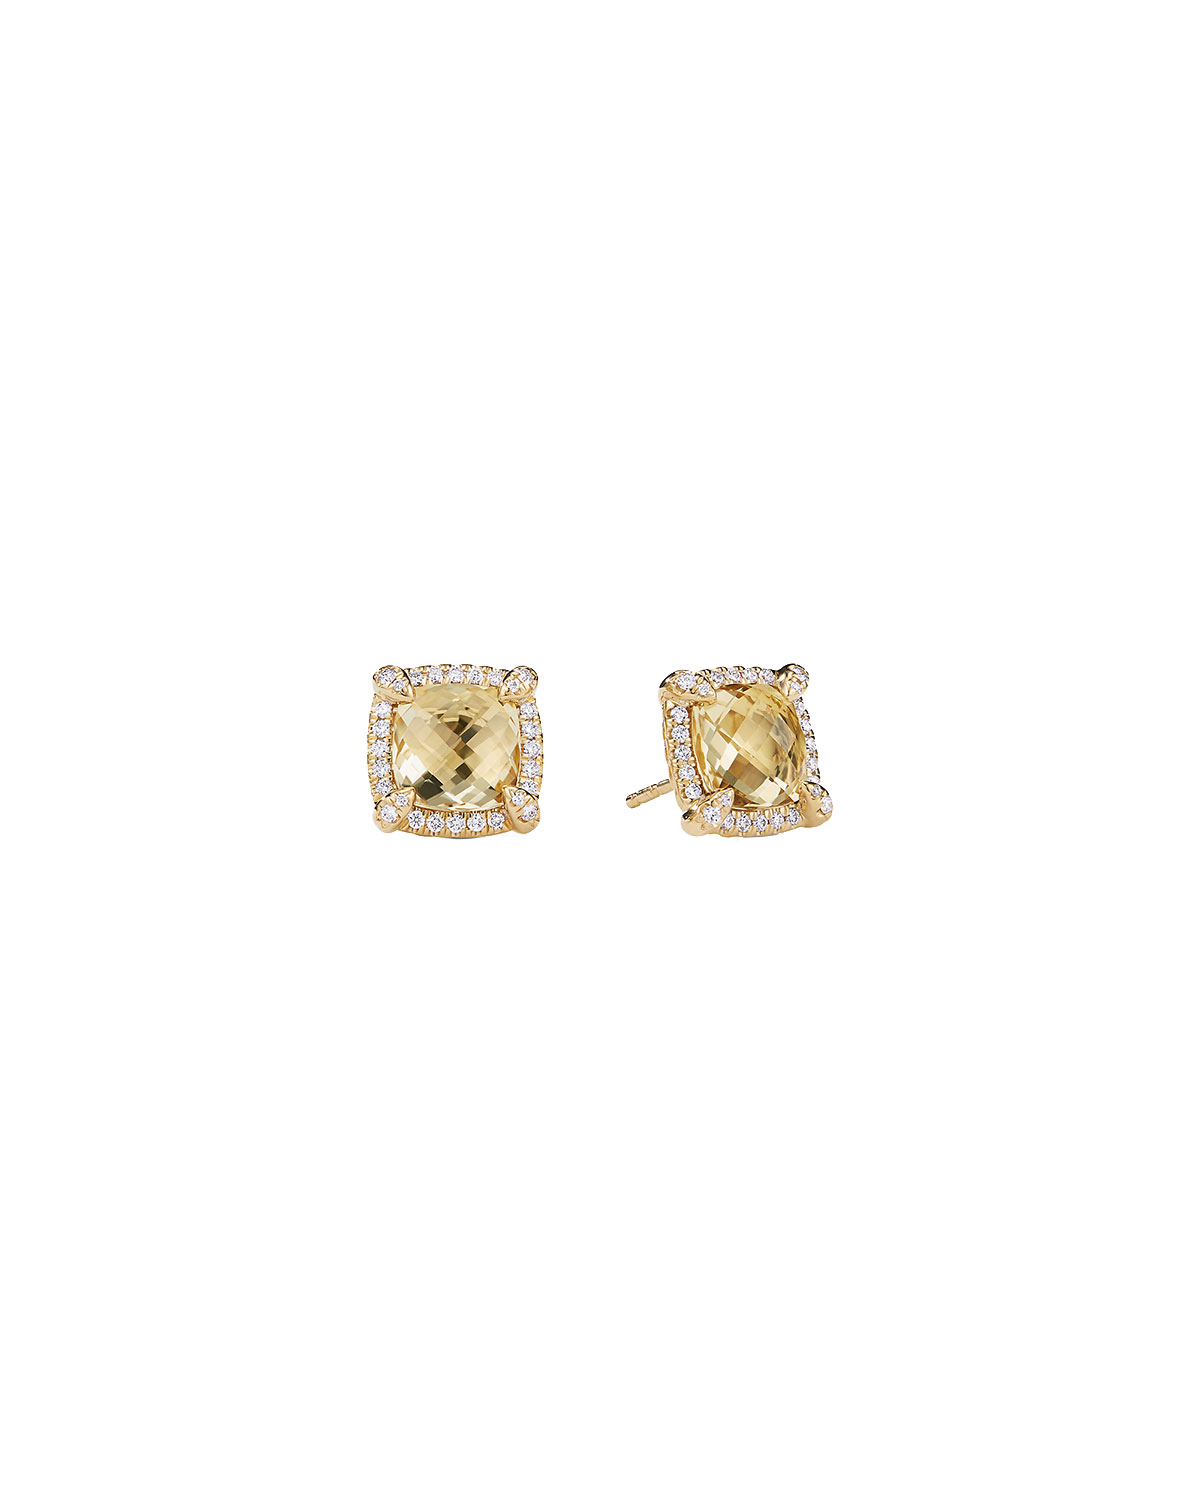 Châtelaine 8mm Champagne Citrine Diamond Earrings